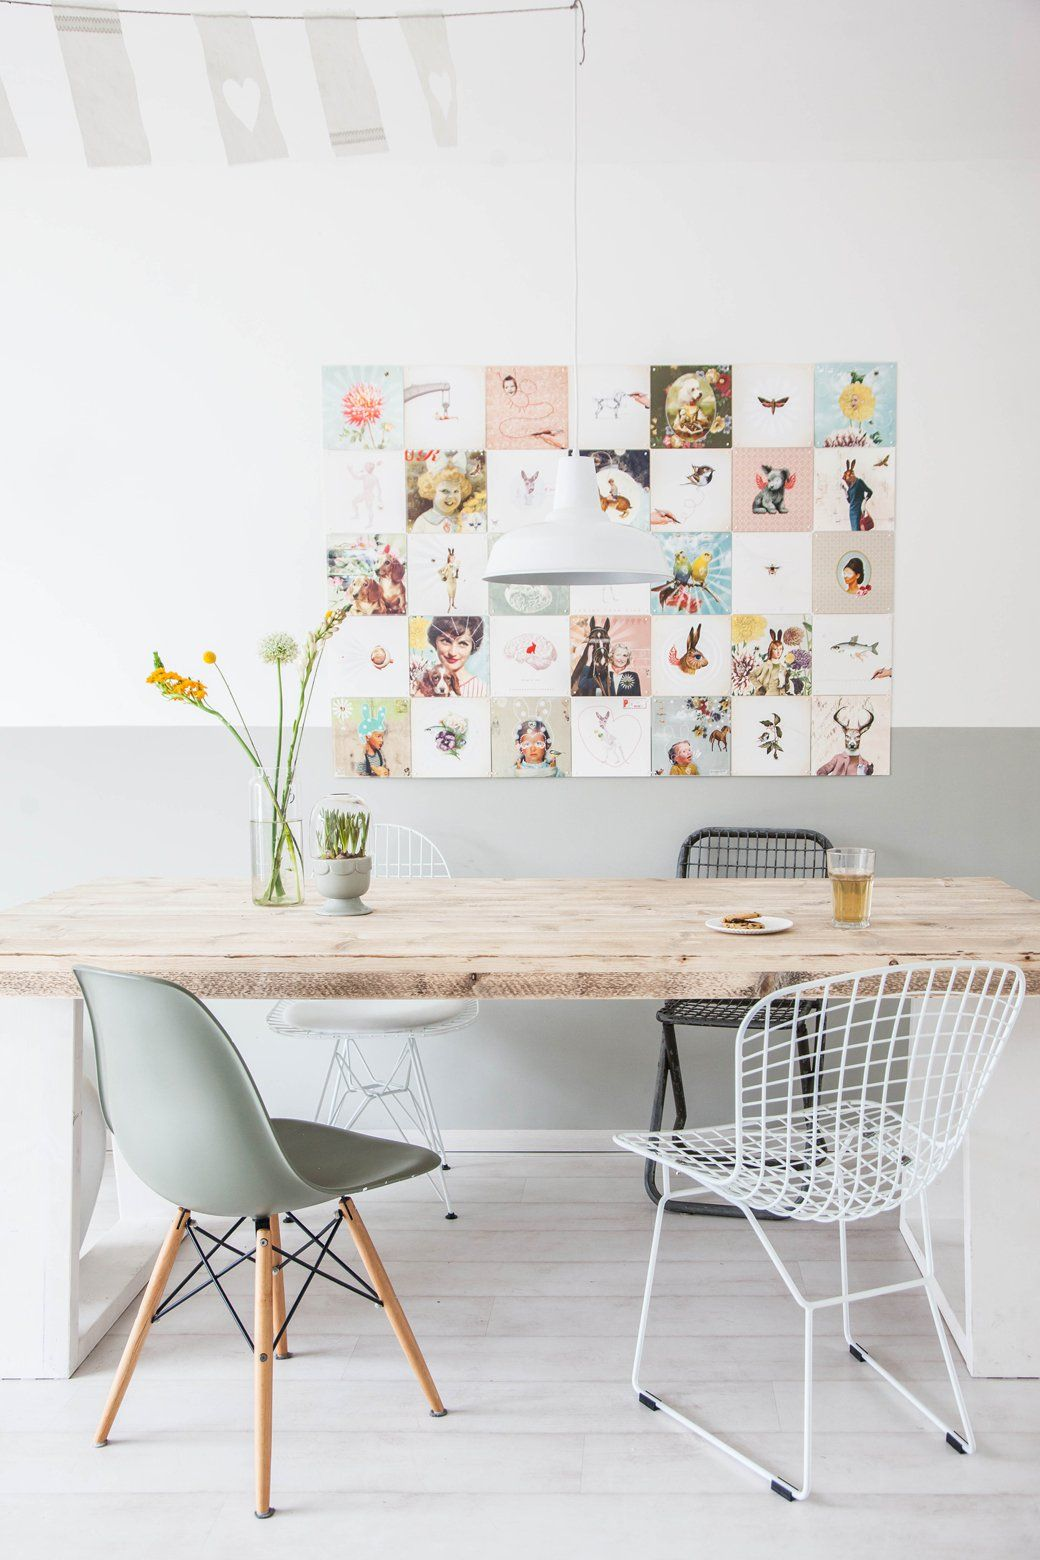 Home Tour: Whimsical Pastels + Family | Pastel interior, Pastels and ...